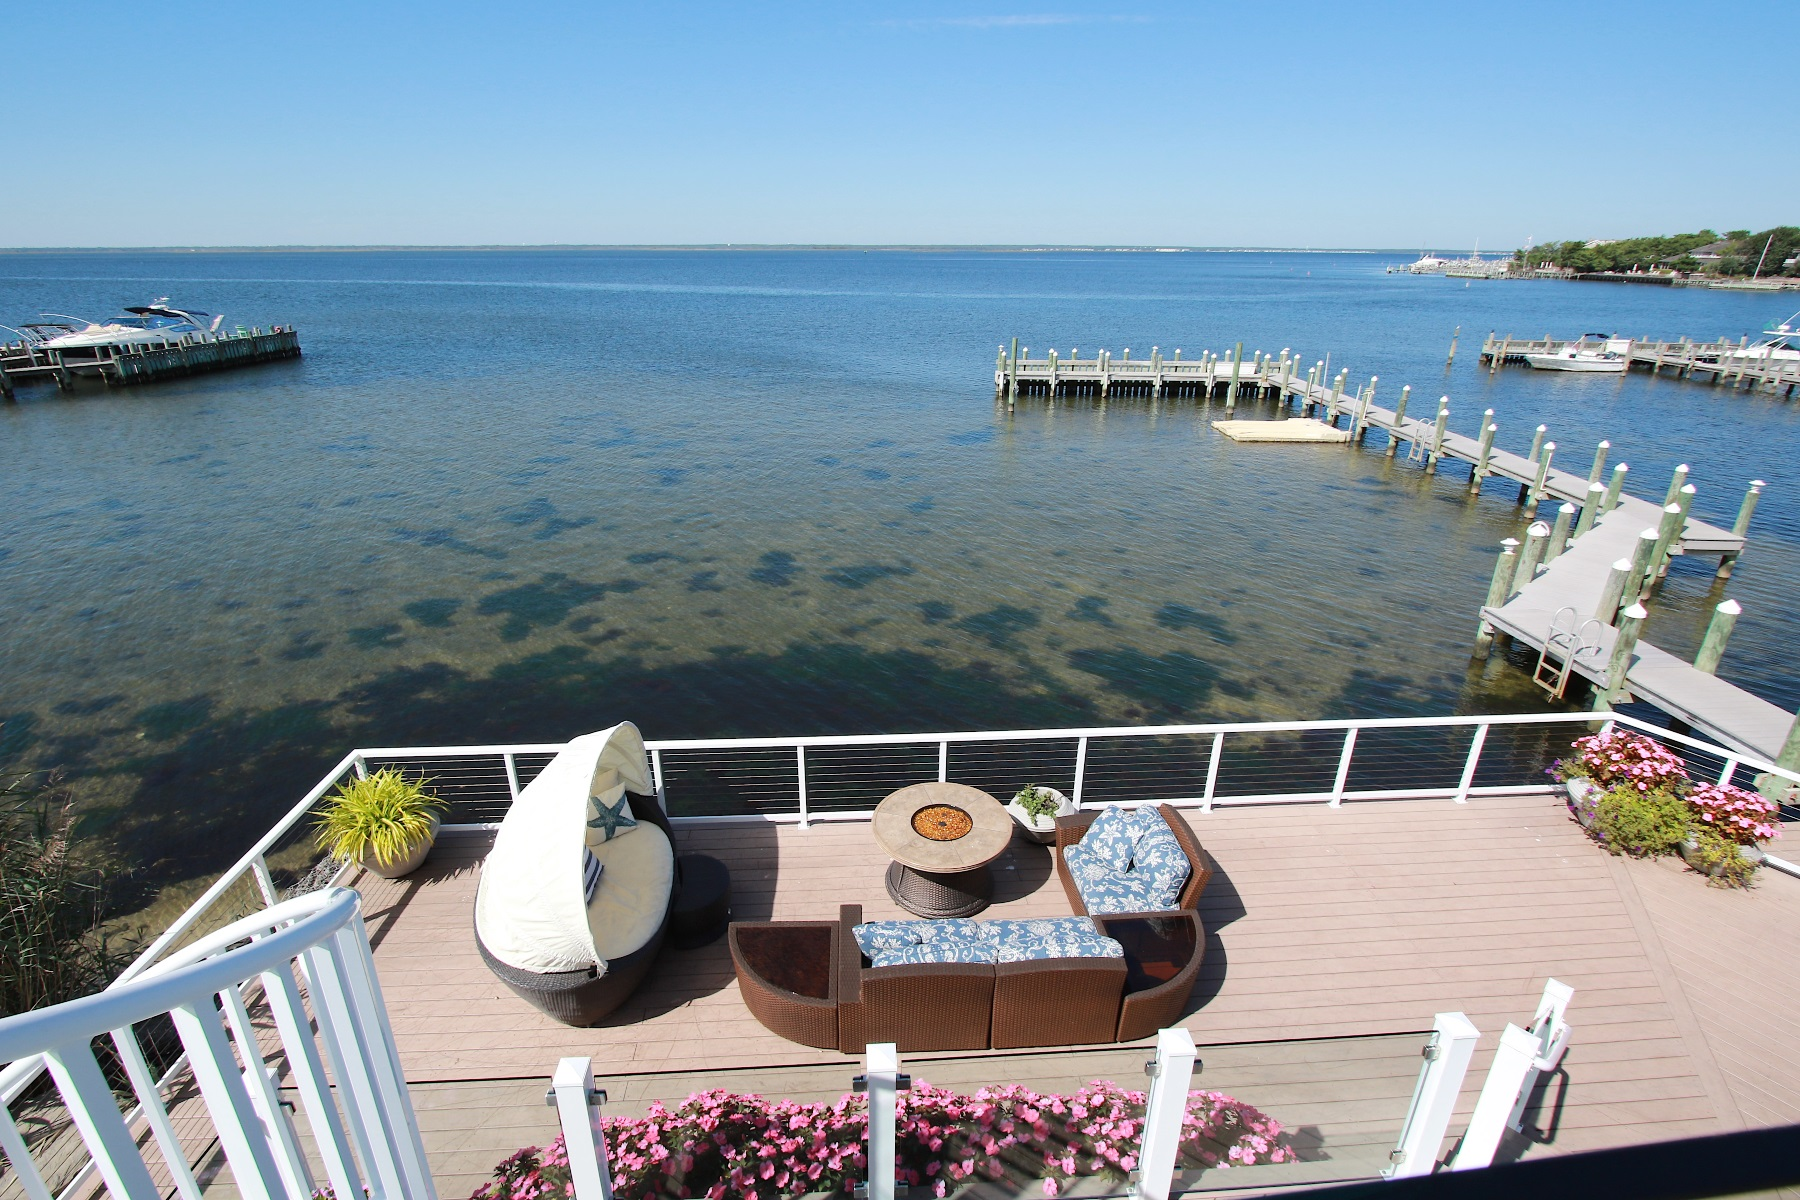 Single Family Home for Sale at SUNSET COVE 40-D Long Beach Blvd. Long Beach Township, New Jersey 08008 United States